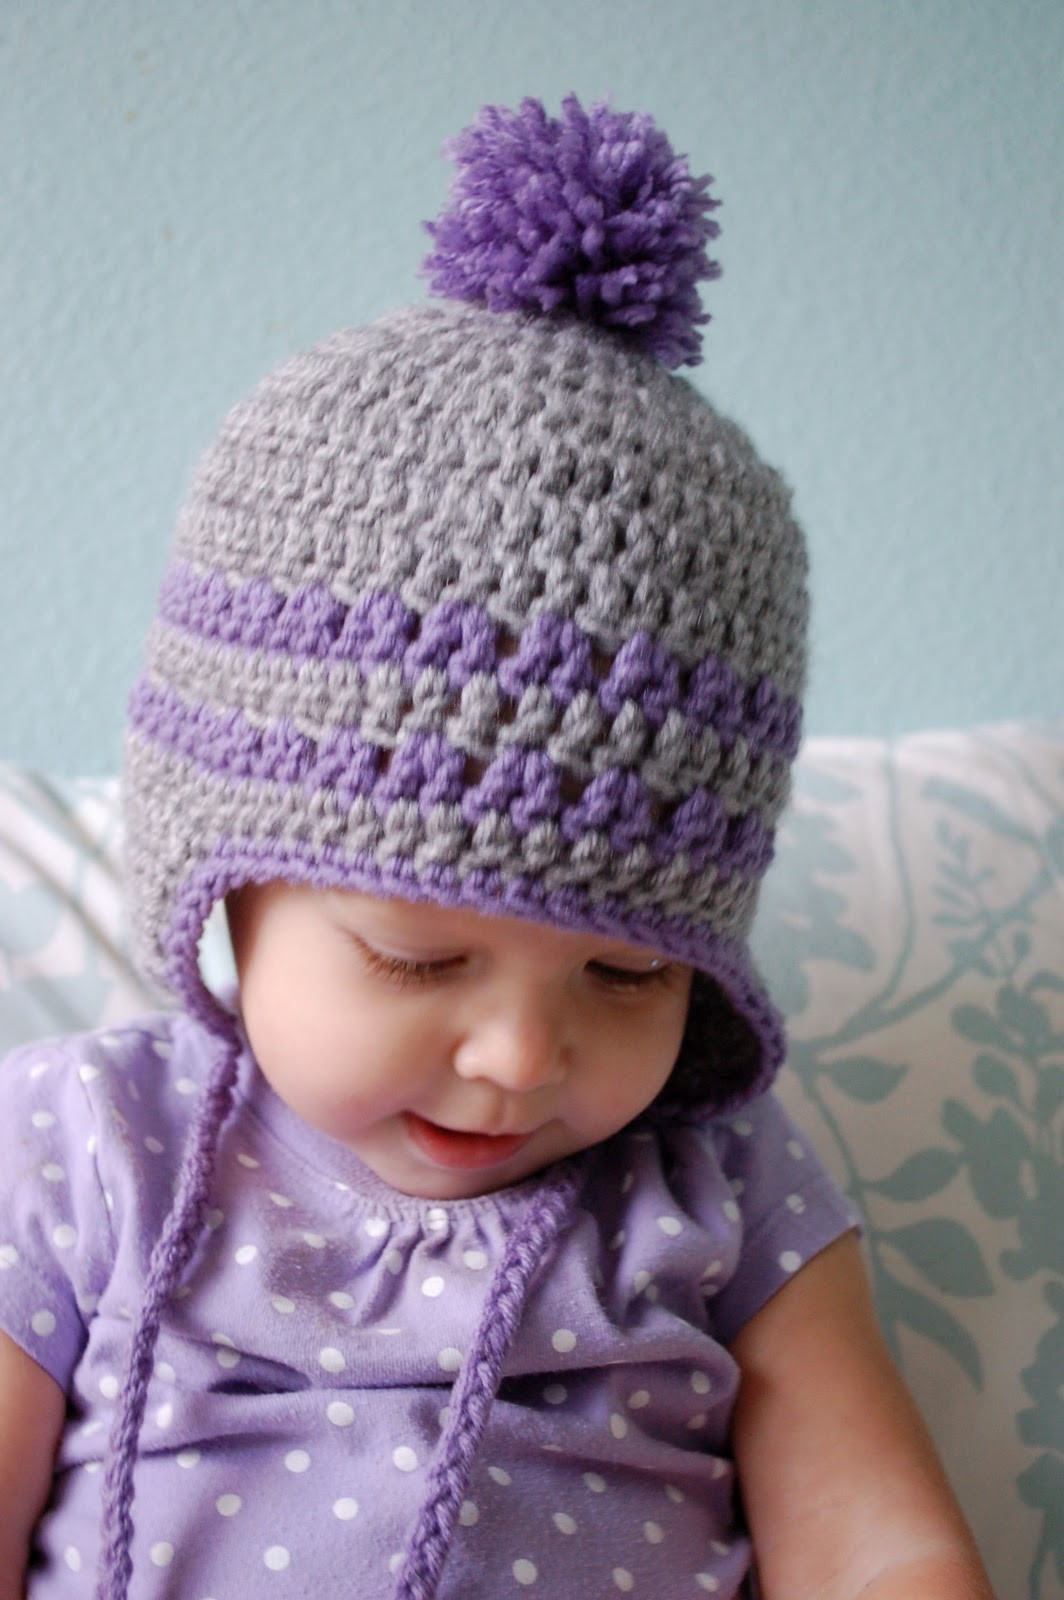 Fresh Alli Crafts Free Pattern Earflap Hat 9 12 Months Crochet Infant Hat Of Awesome 46 Ideas Crochet Infant Hat